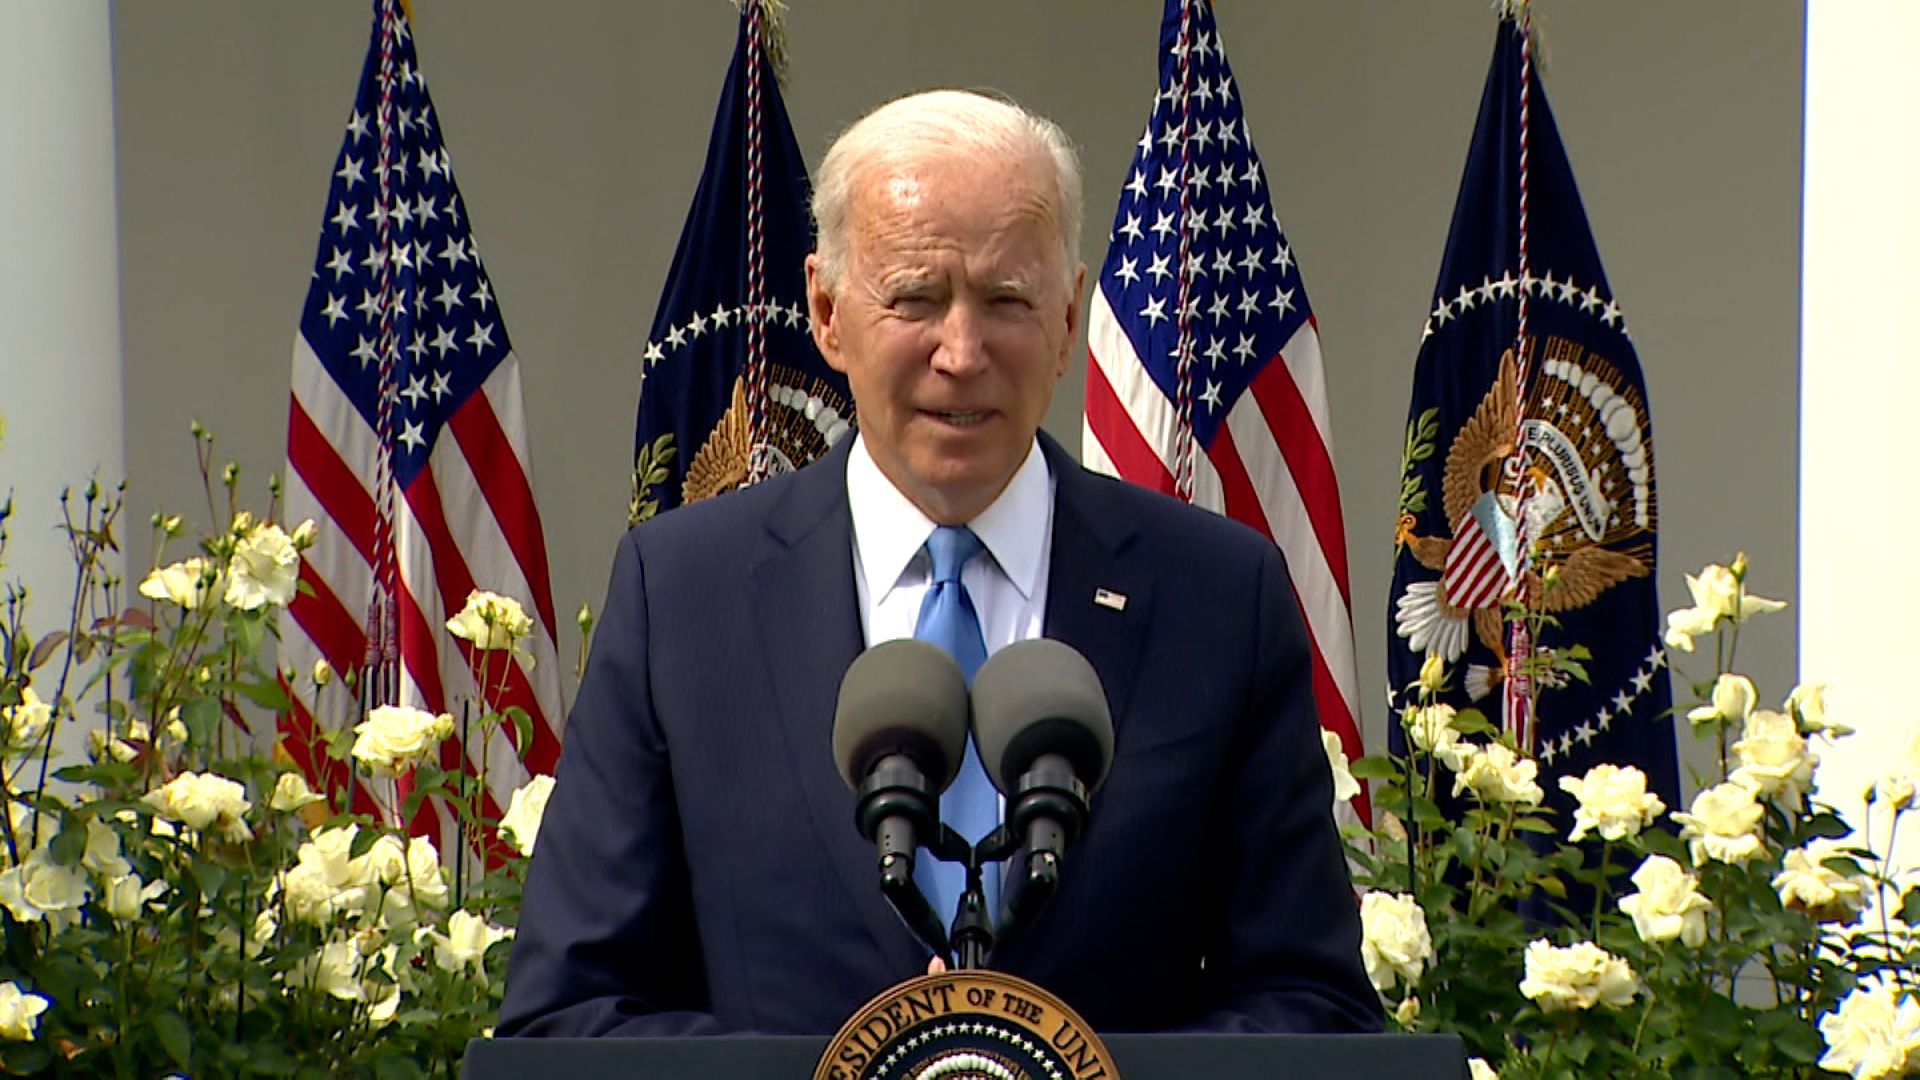 Biden touts new CDC mask guidance as 'a great day for America'